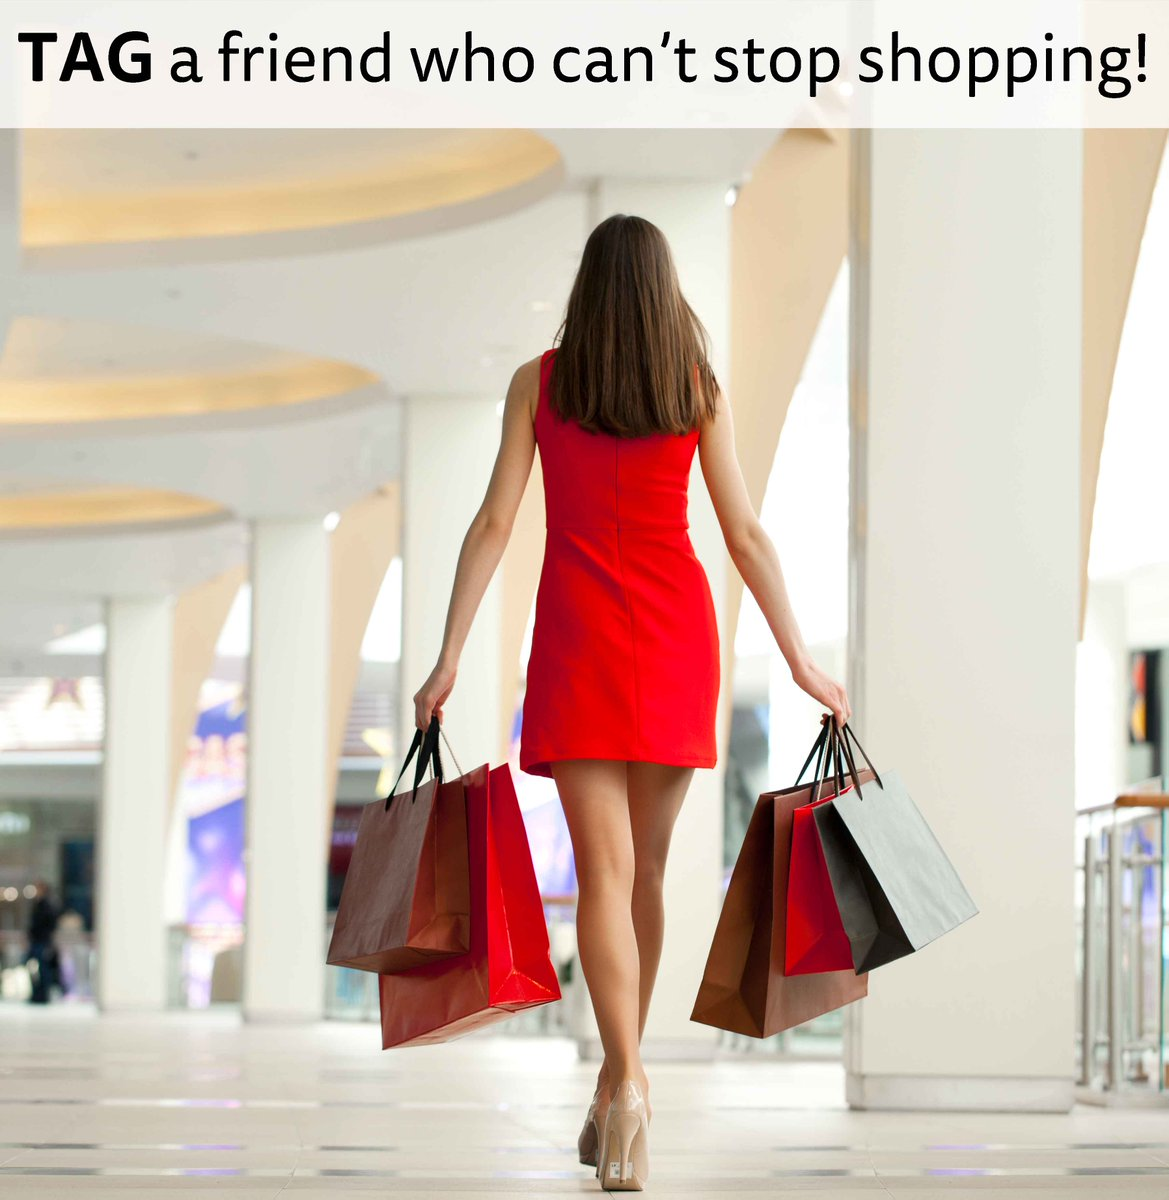 Tag your friends!  #tagafriend #shopaholic #shopping<br>http://pic.twitter.com/UbyL5uaI6h